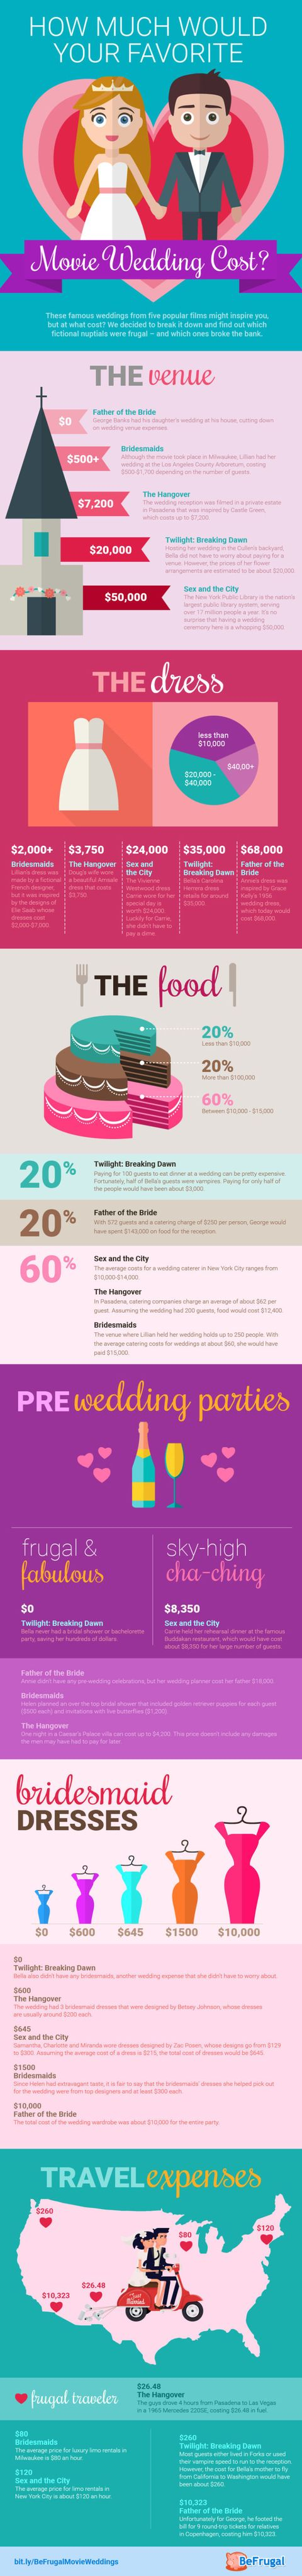 Cost of Movie Weddings - How Much The \